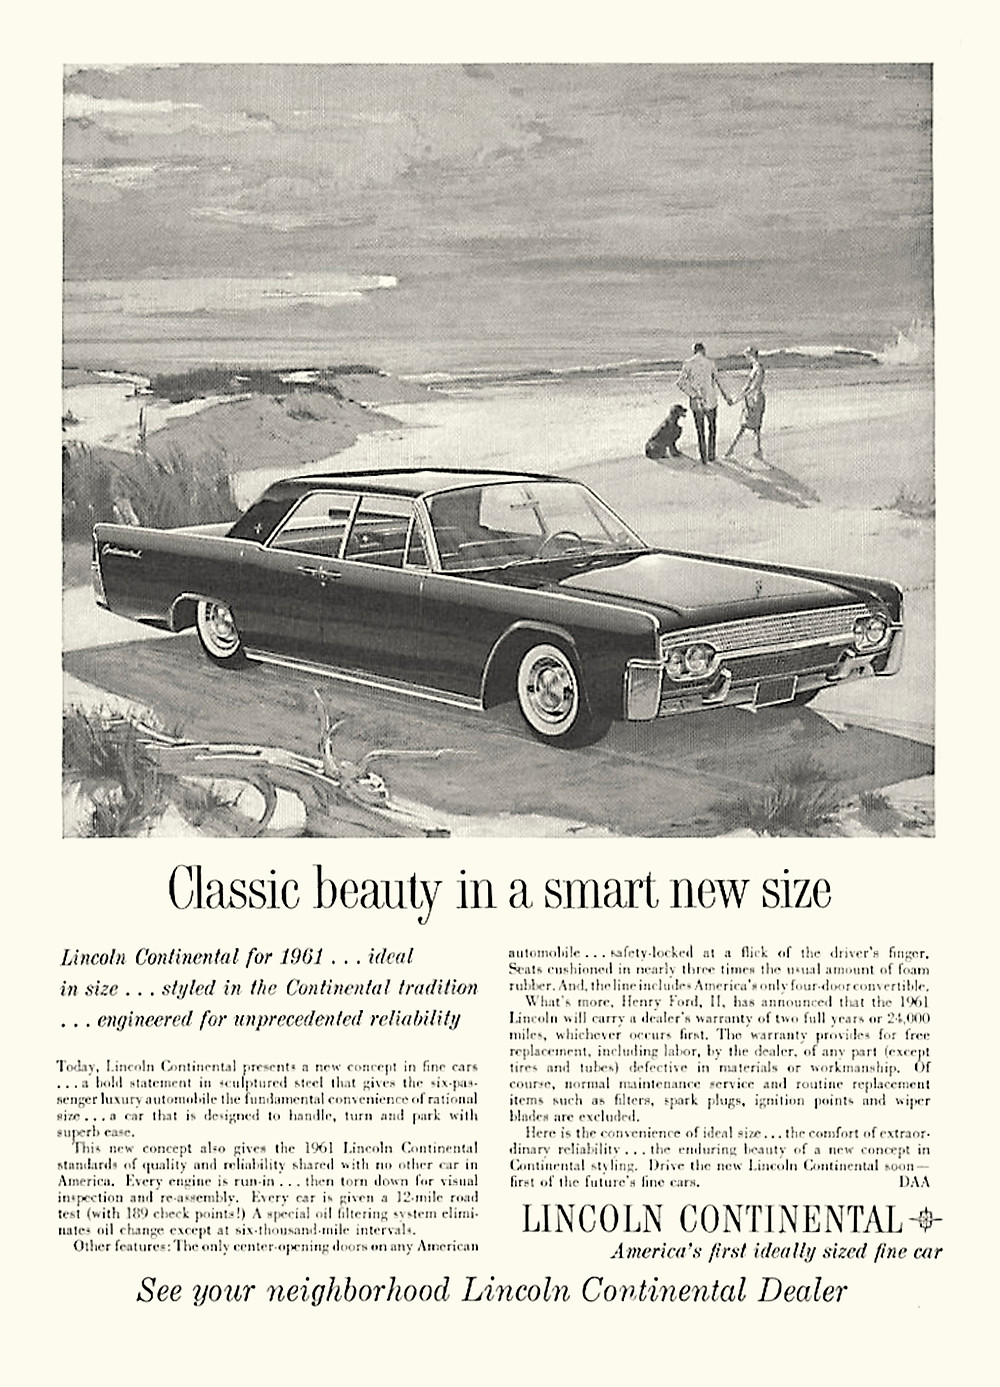 Classic Beauty in a Smart New Size, 1961 Lincoln Continental print ad.